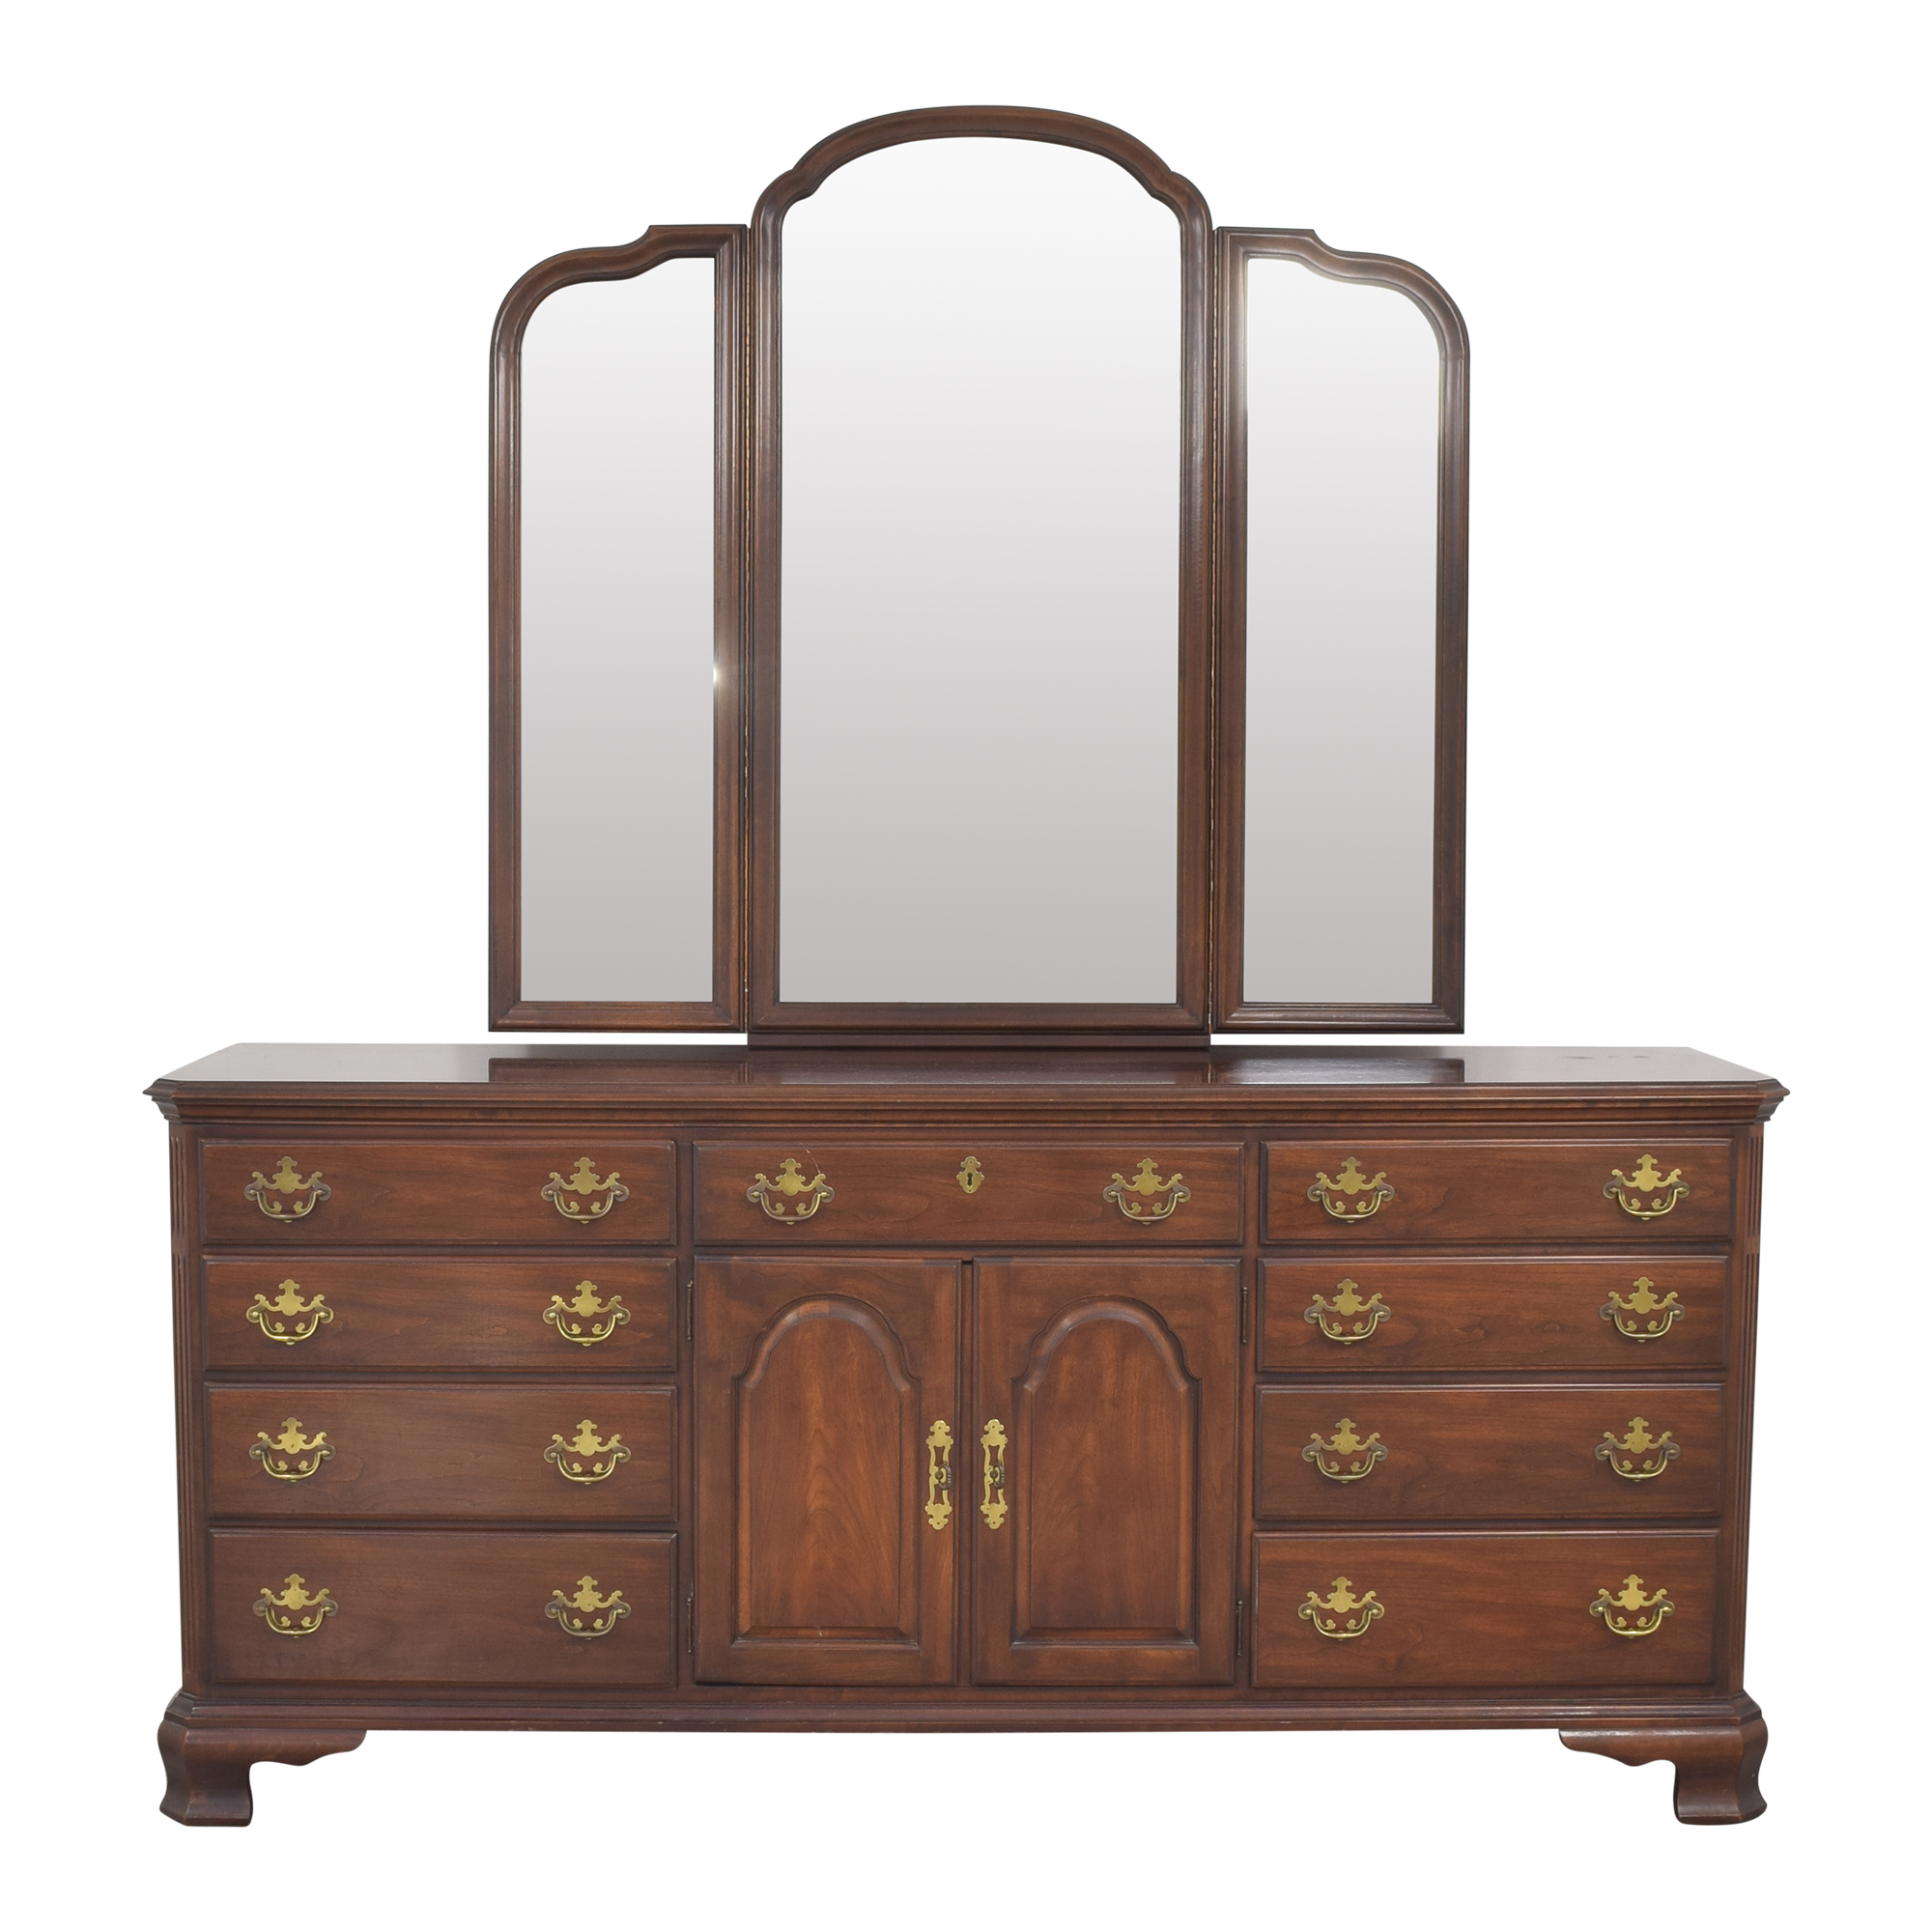 Drexel Drexel Triple Dresser with Trifold Mirror nyc